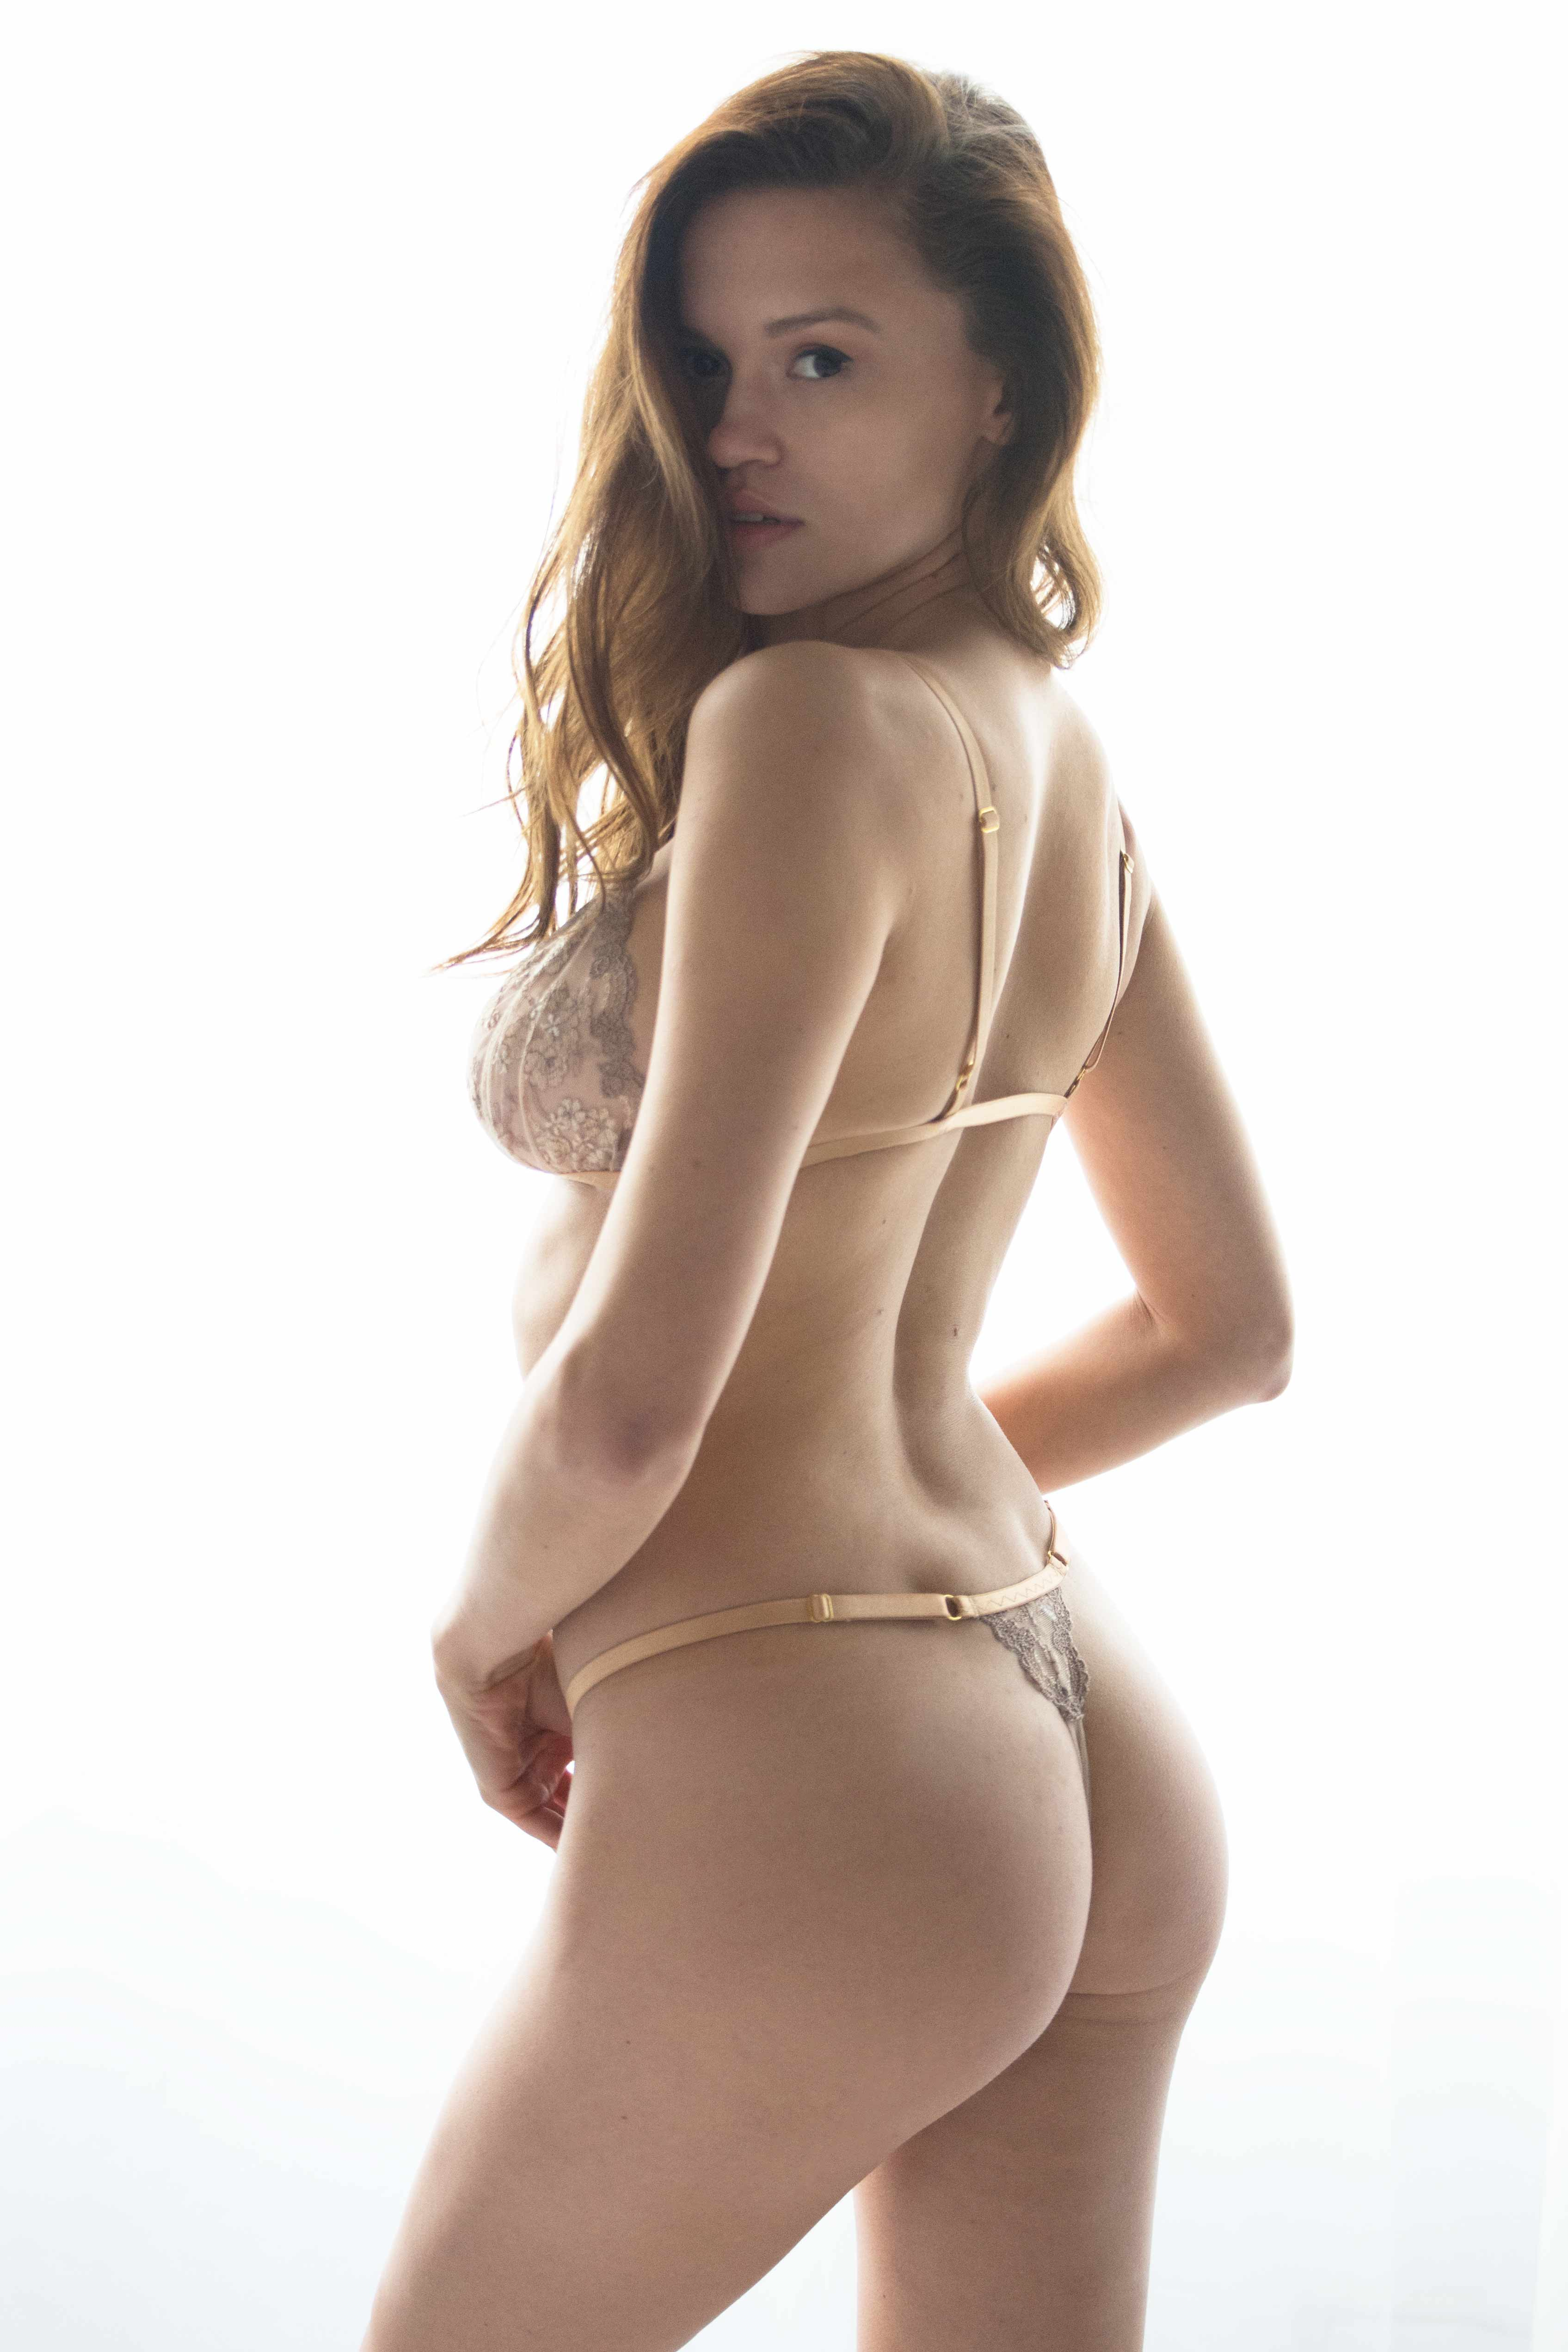 Sexy nude gold lace unlined bralette bra set with a front closure image | IDentity Lingerie UK